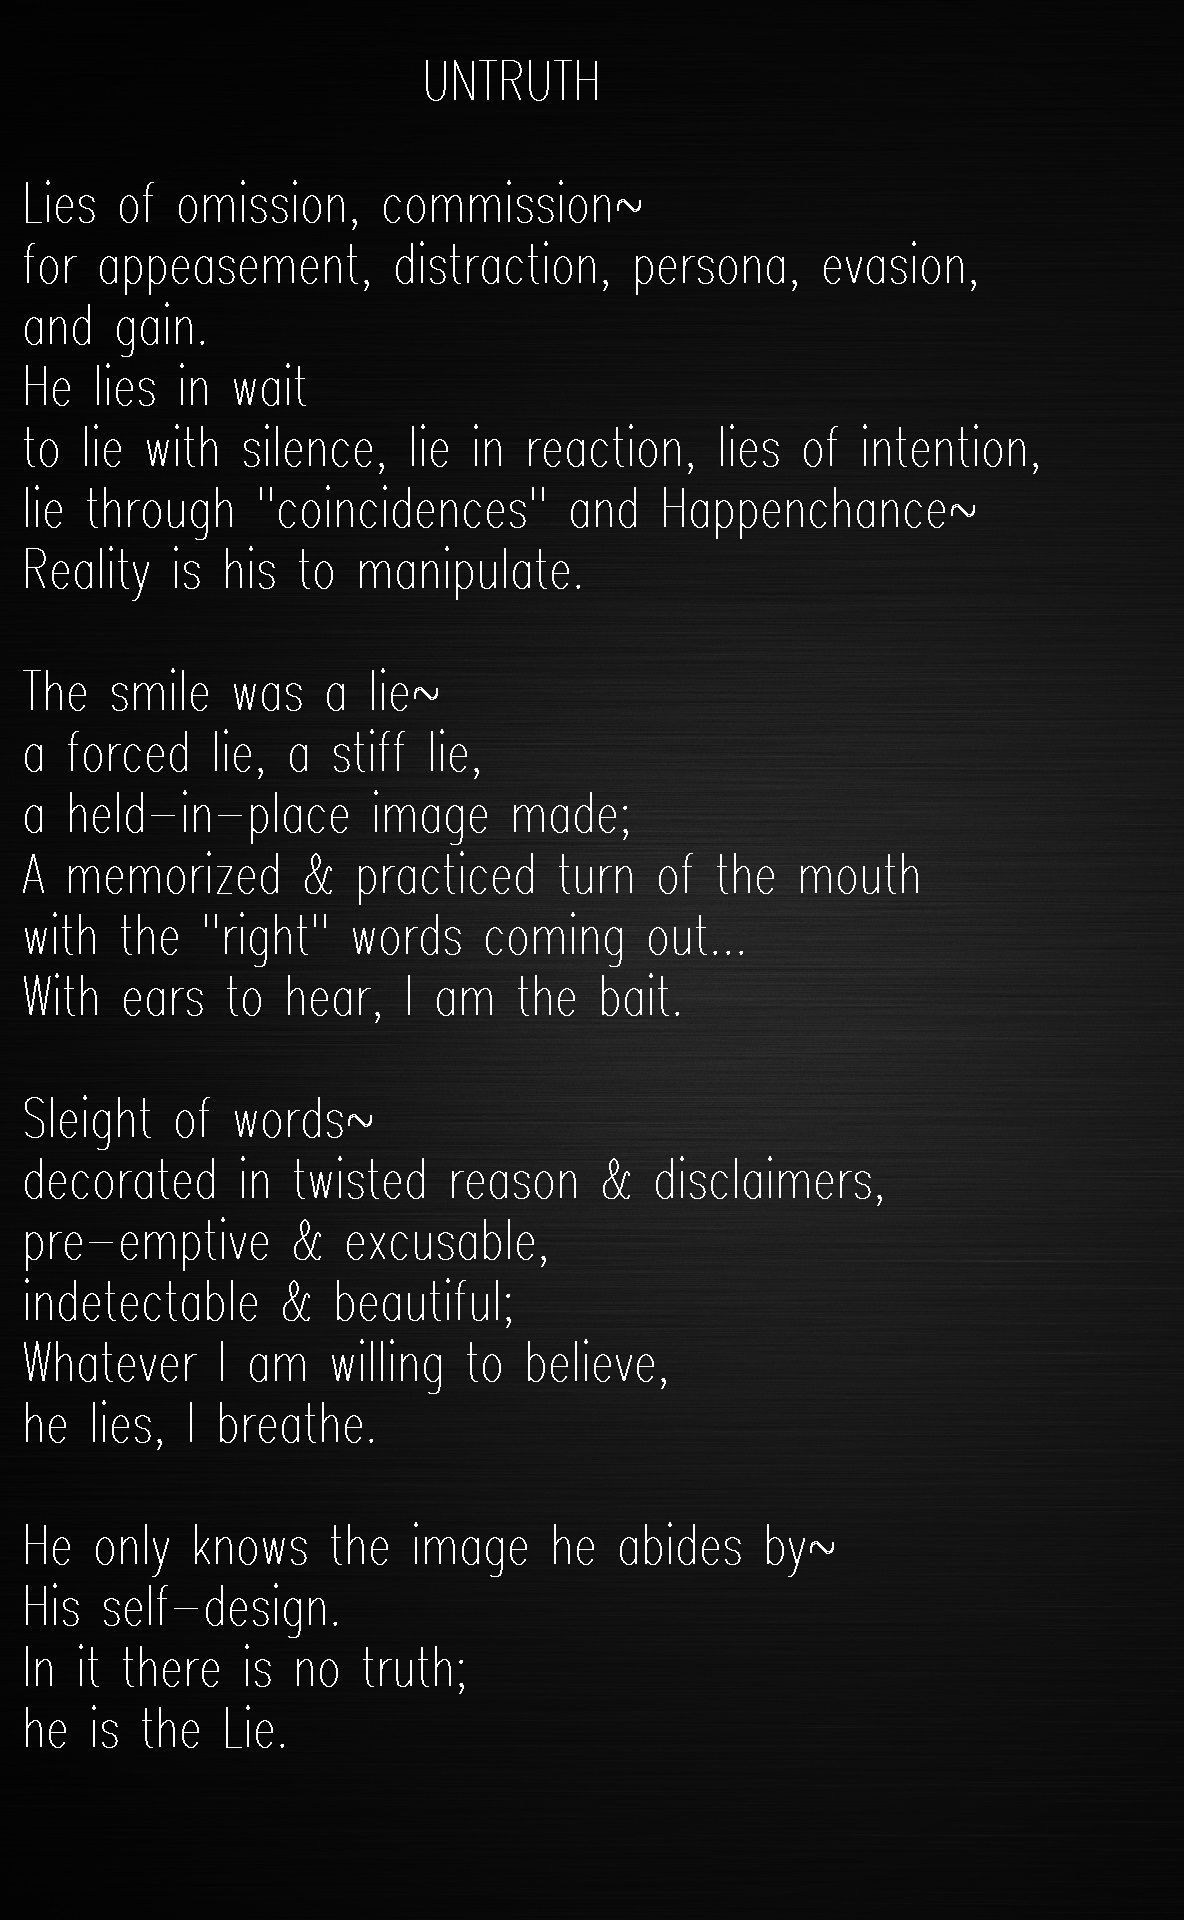 Poem About Love And Lies